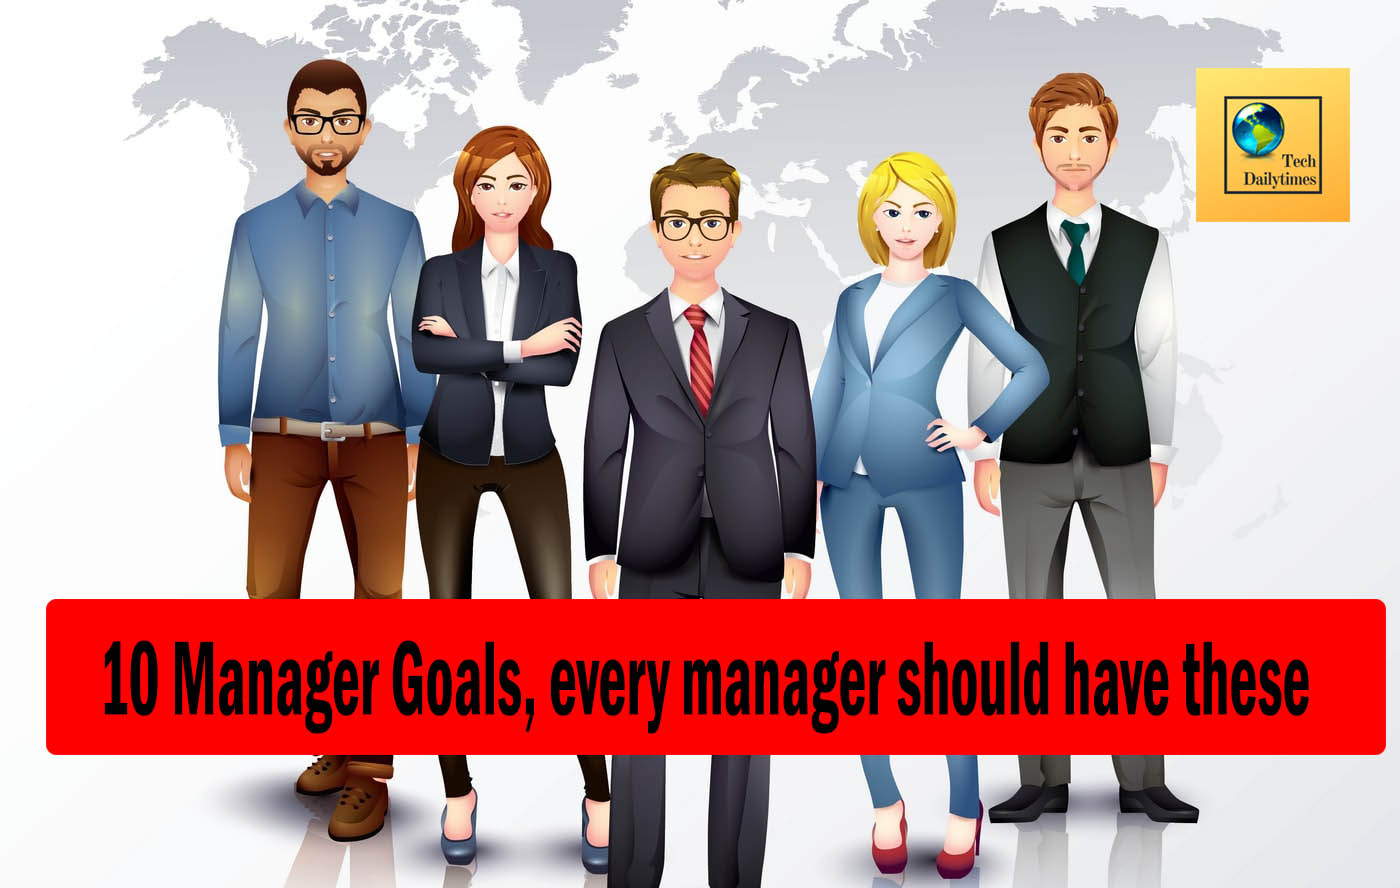 10 Manager Goals, Every Manager should have these